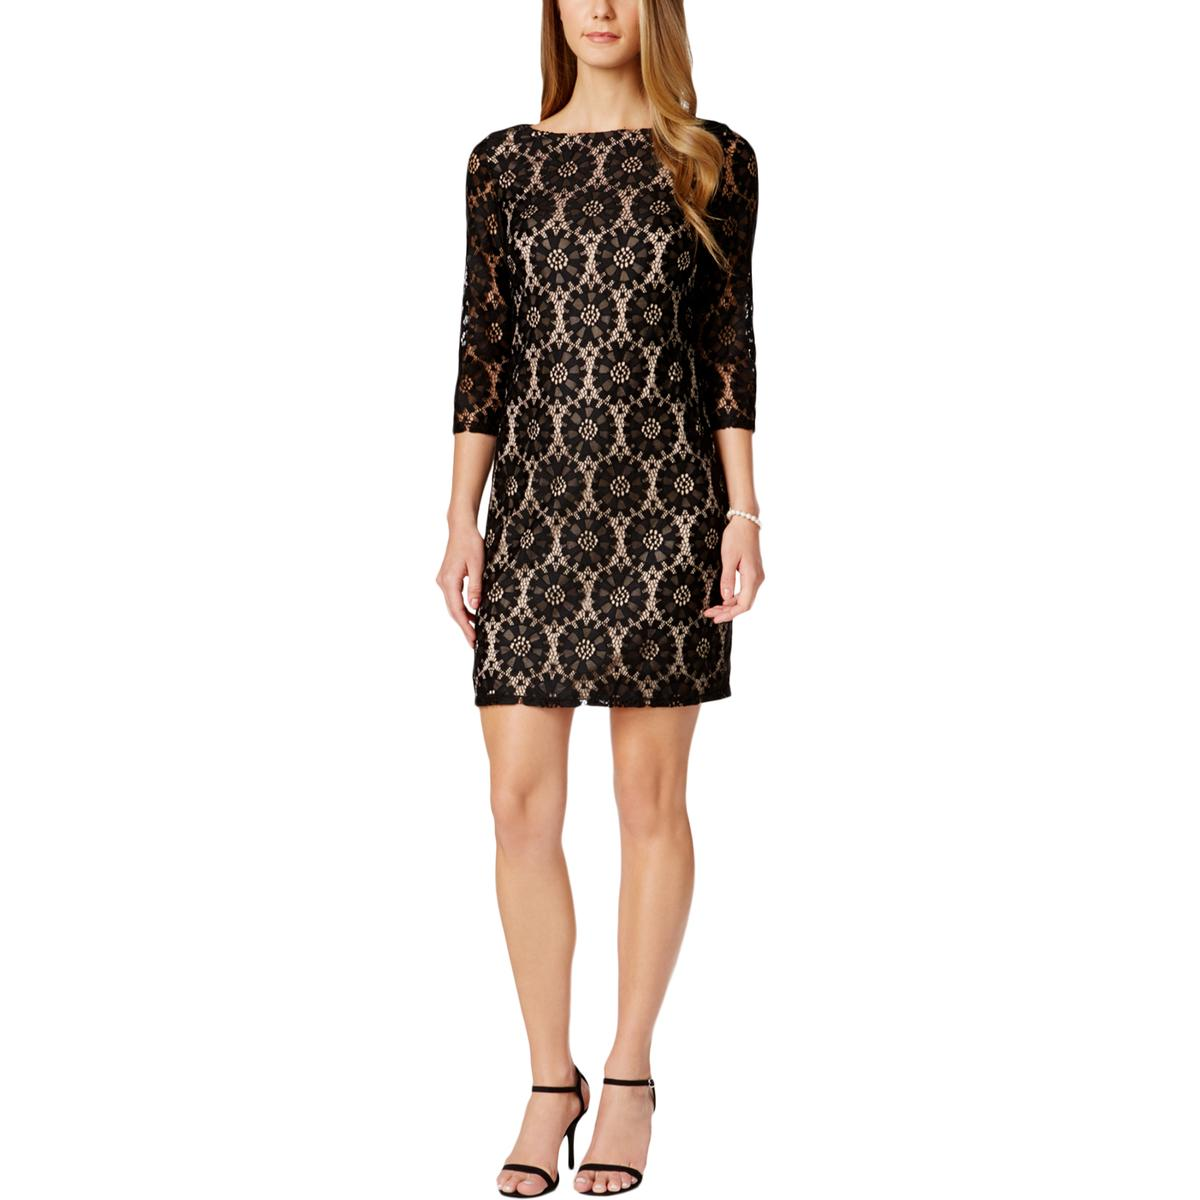 3b9737d88454c Details about Jessica Howard Womens Black Illusion Sleeve Lace Sheath  Casual Dress 6 BHFO 2144